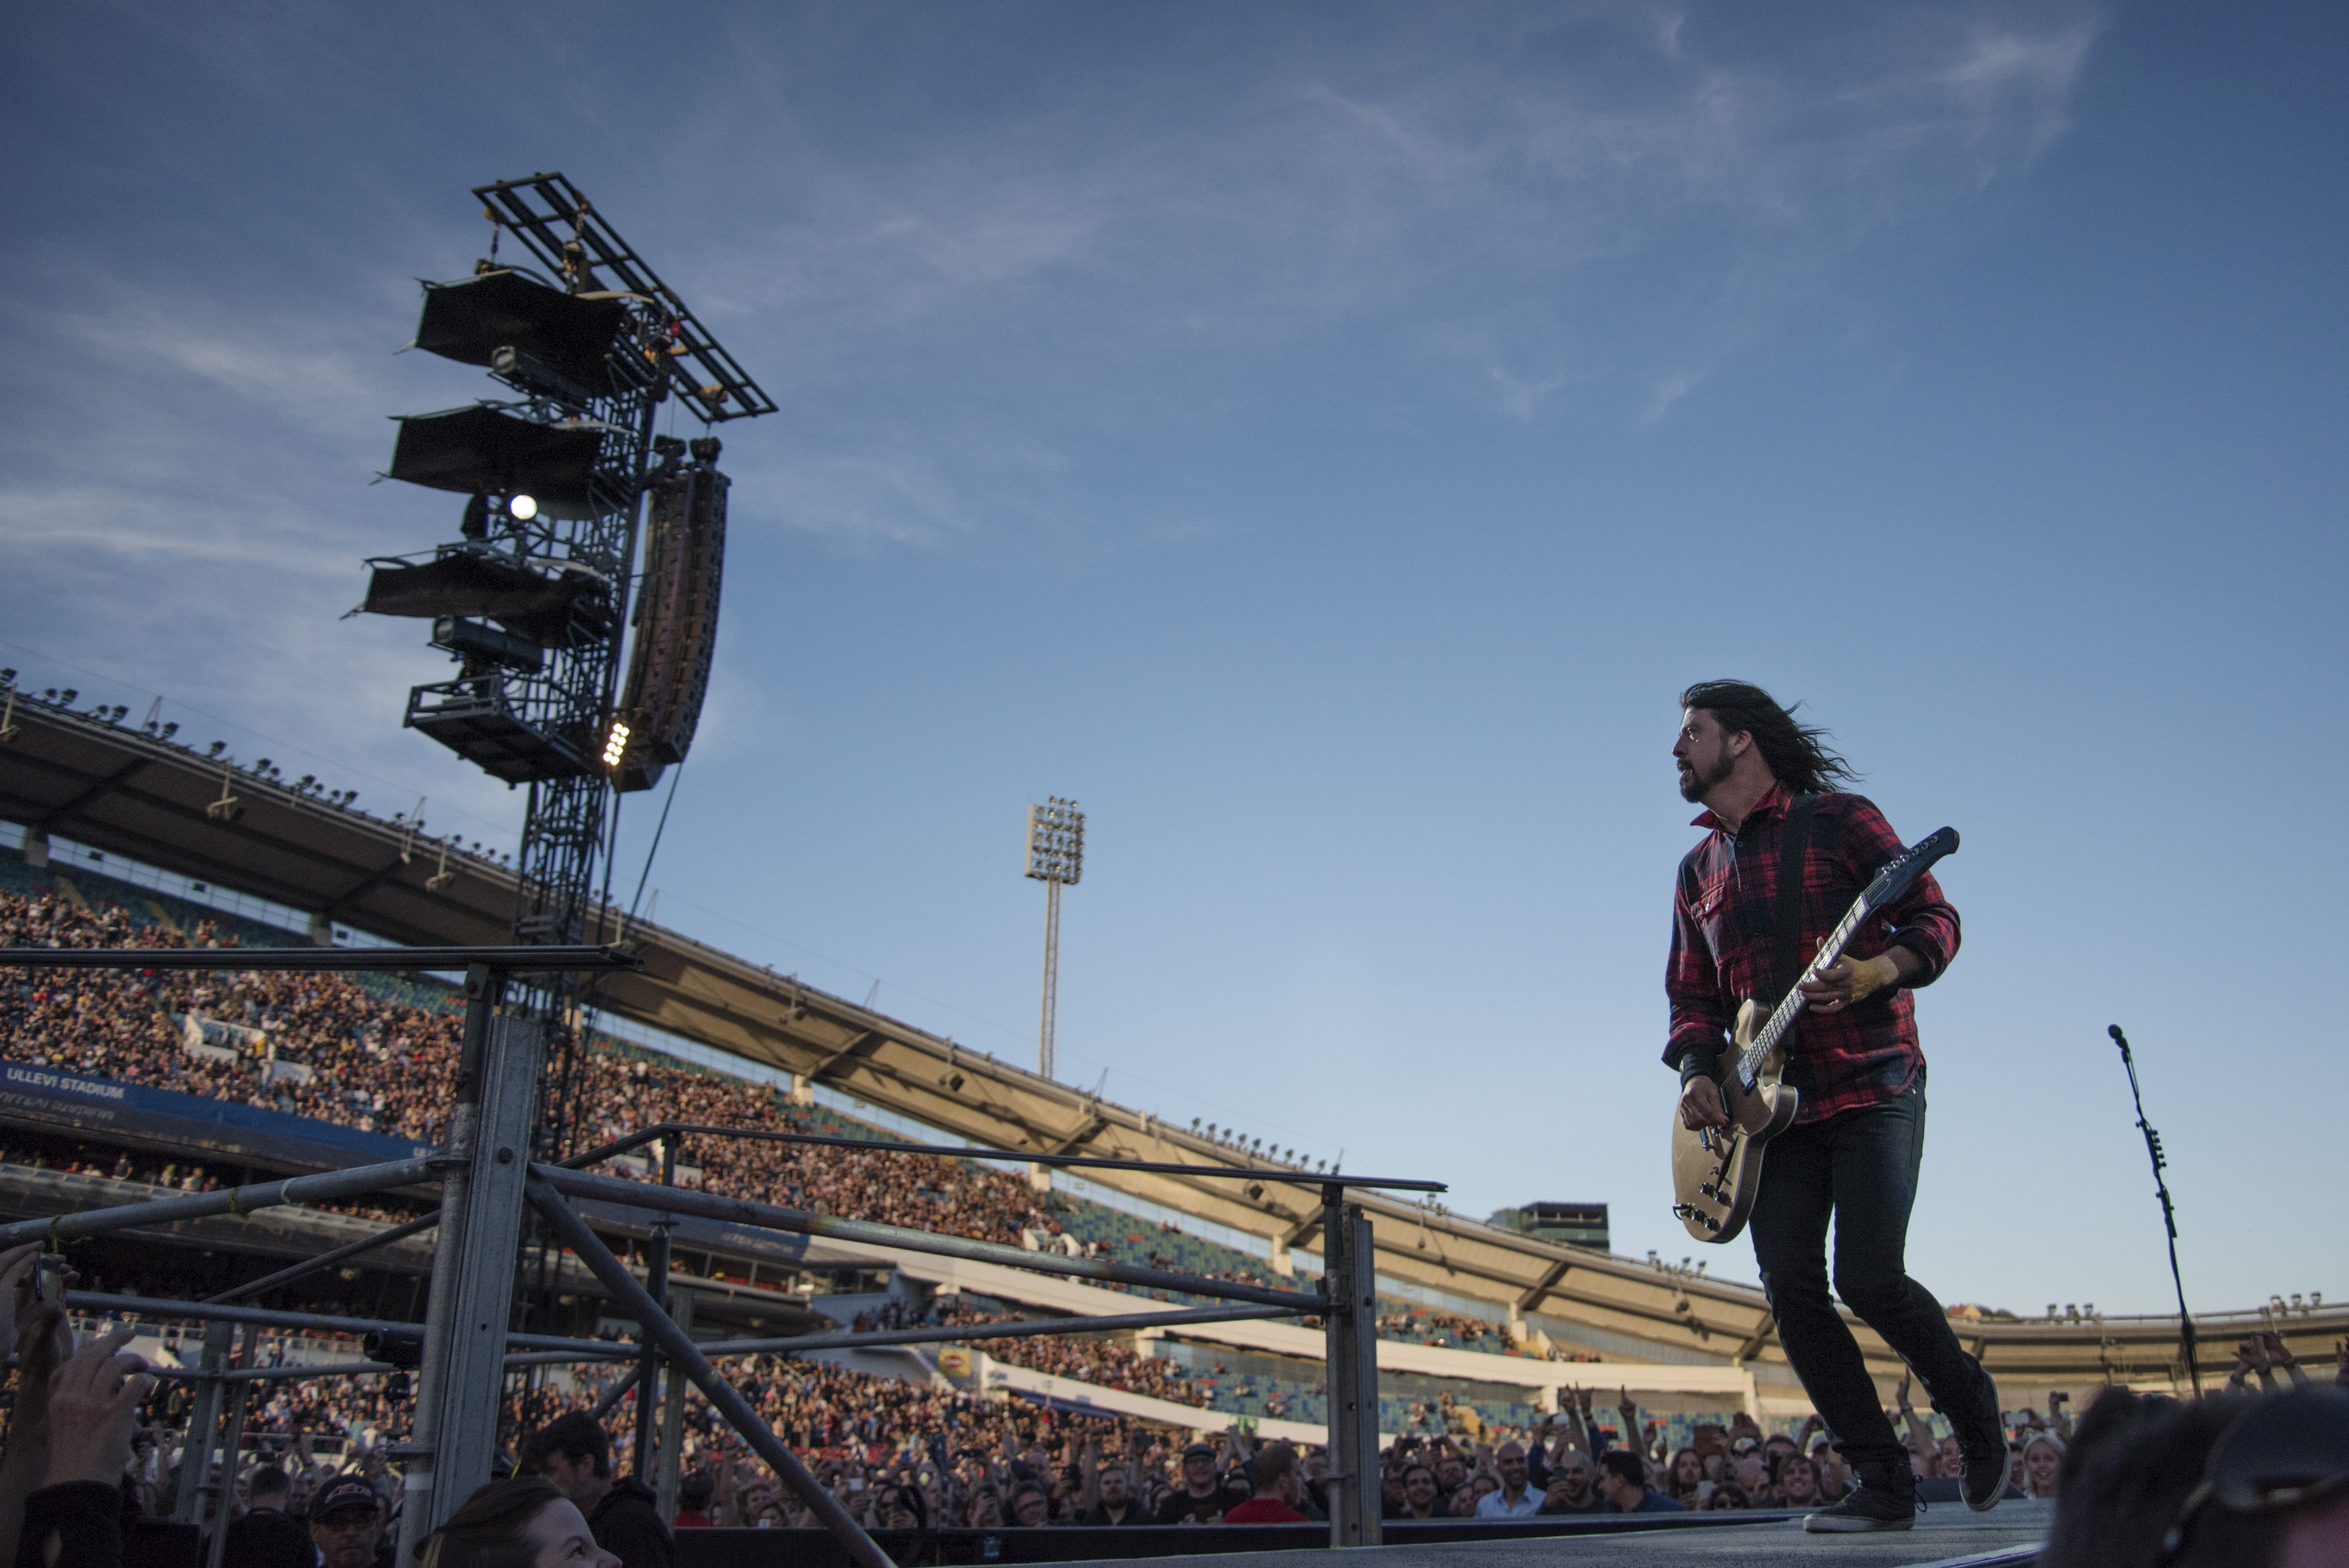 Foo Fighters band member Dave Grohl performs during the band's concert at Nya Ullevi in Gothenburg, Sweden, on June 12, 2015, before falling off the stage.